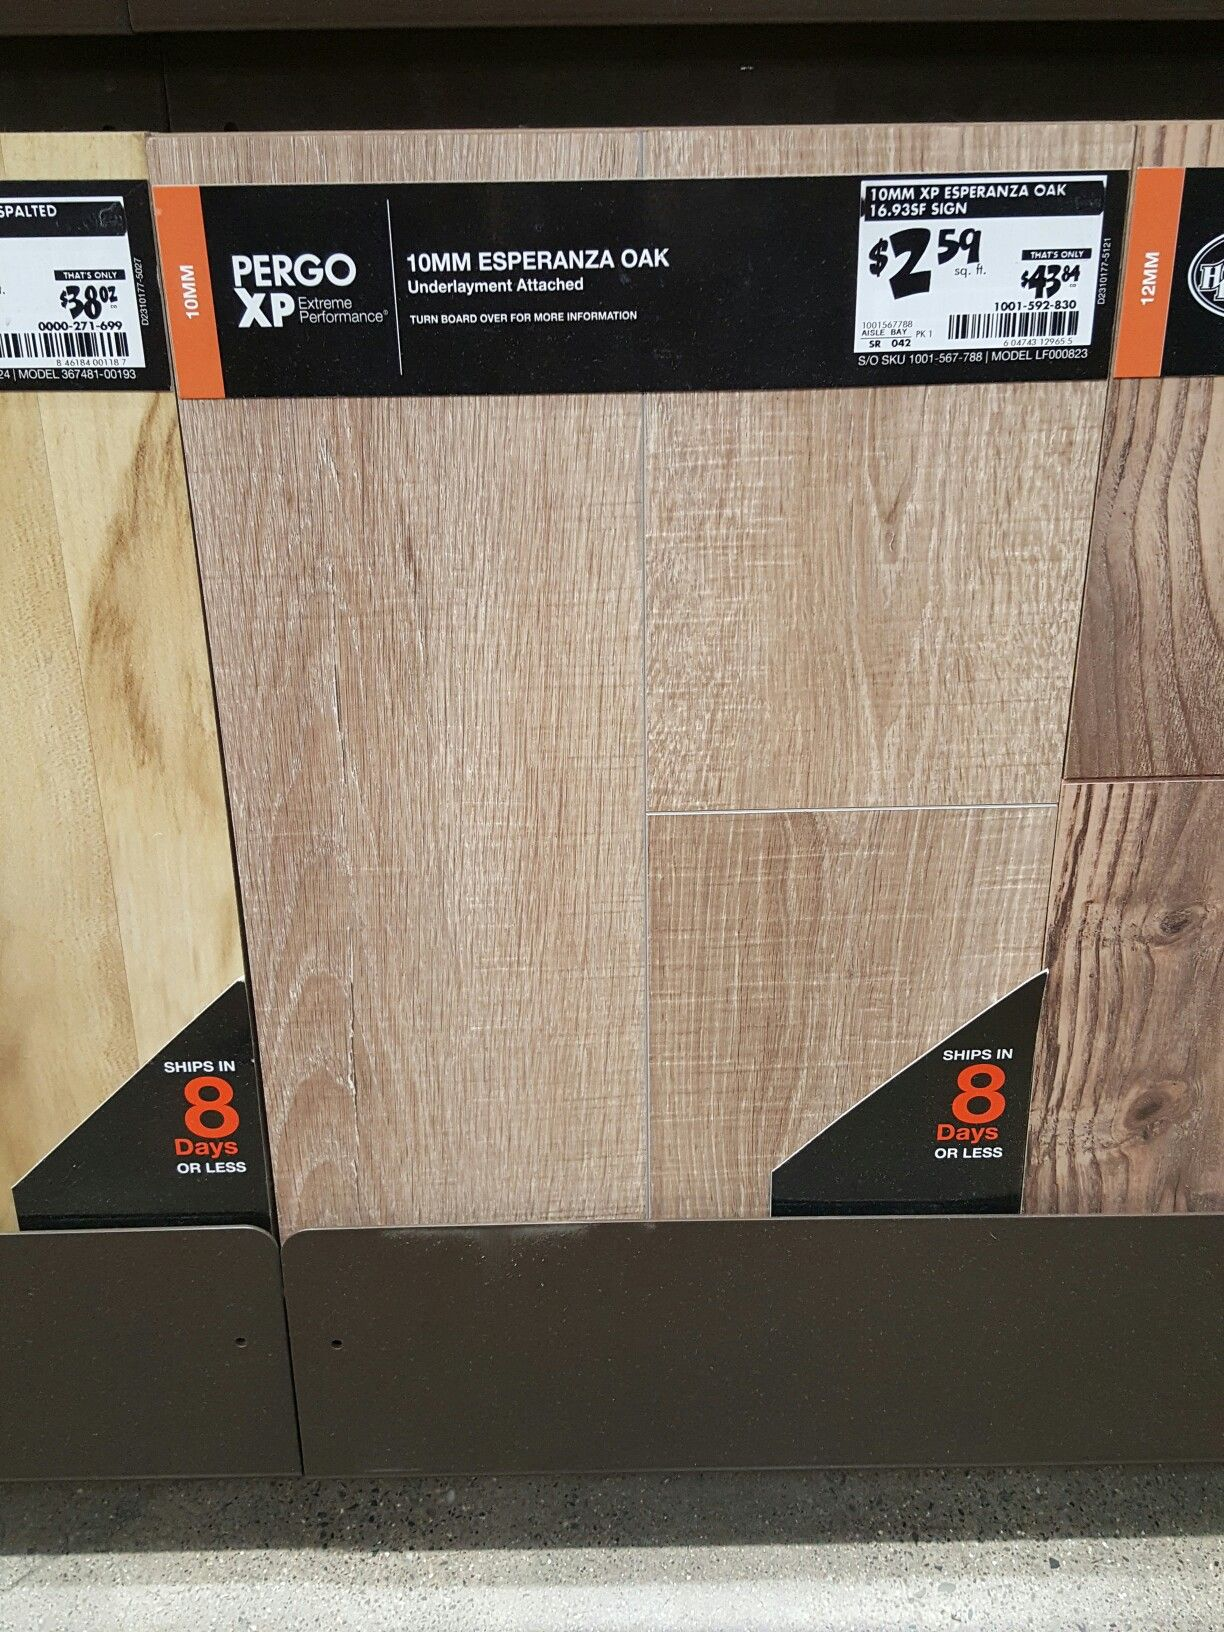 2 59 Pergo Xp Esperanza Oak Home Depot Pergo Home Depot Home Furniture